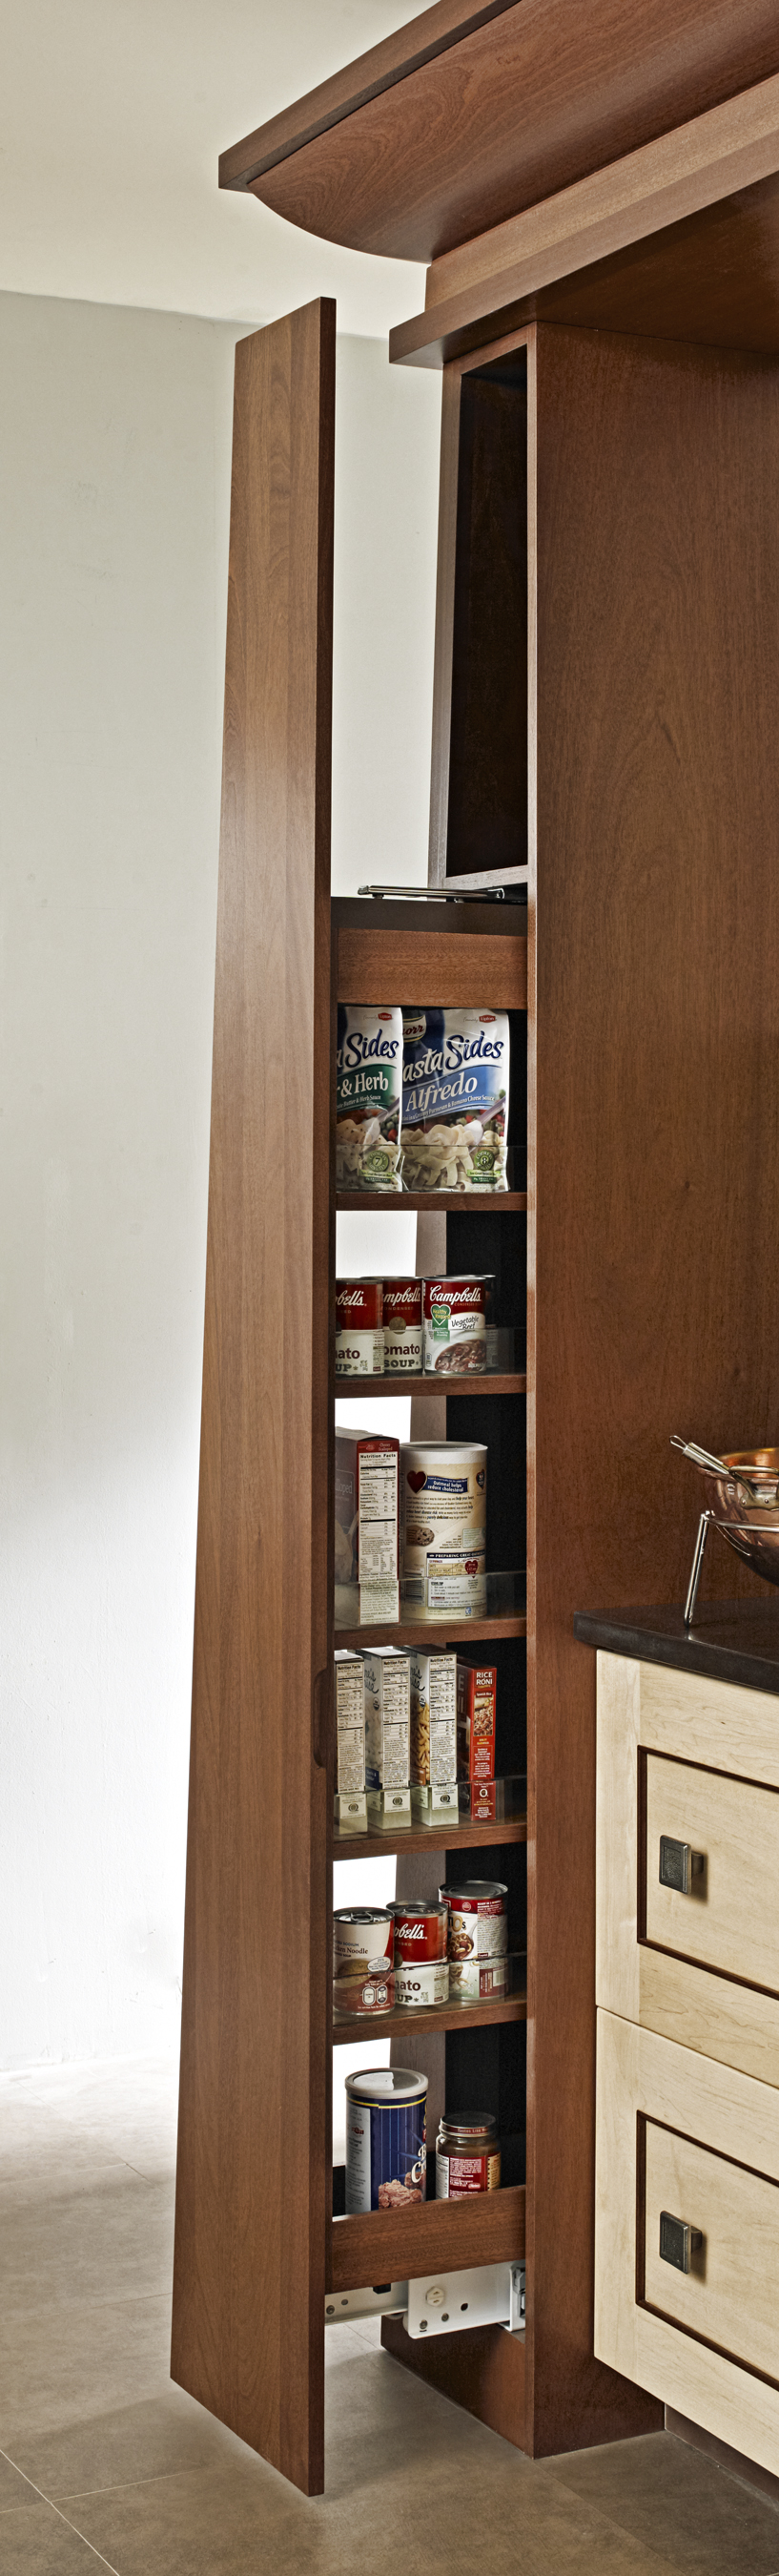 pullout-pantry.jpg